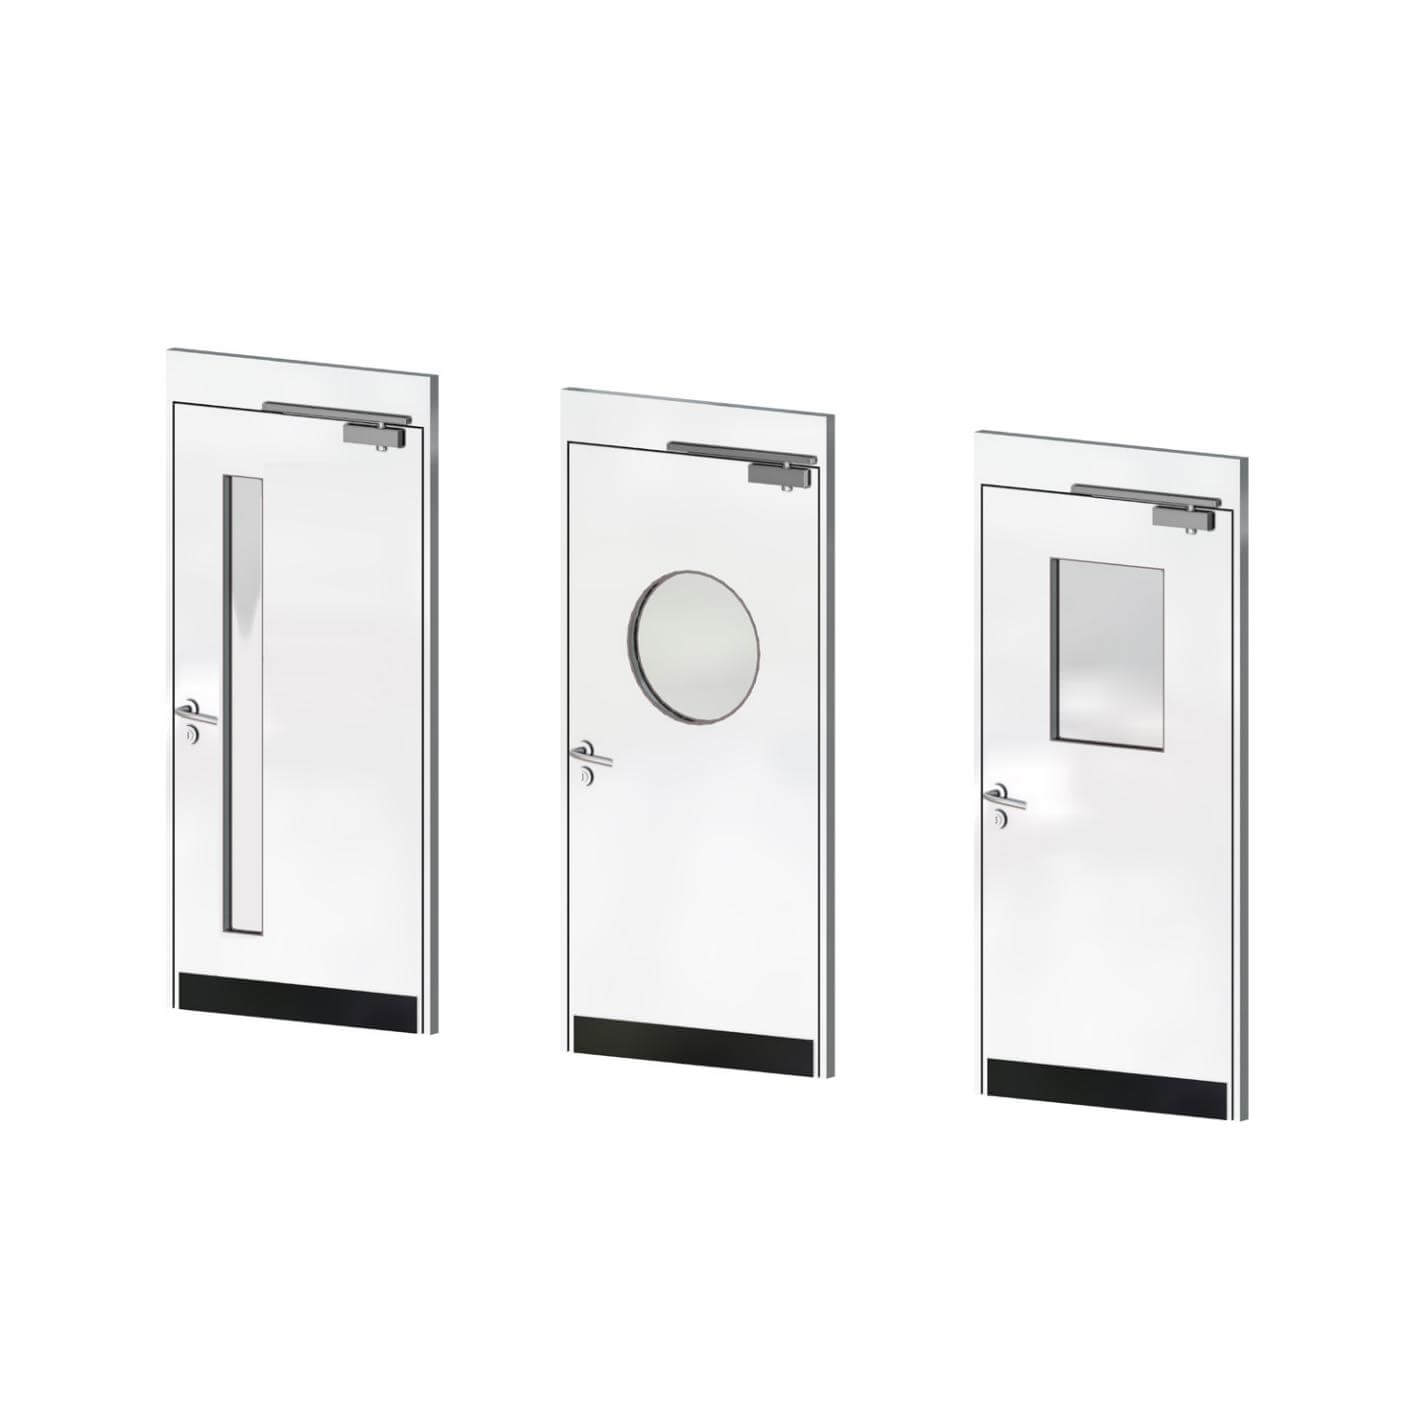 Commercial partitioning, Titan doors